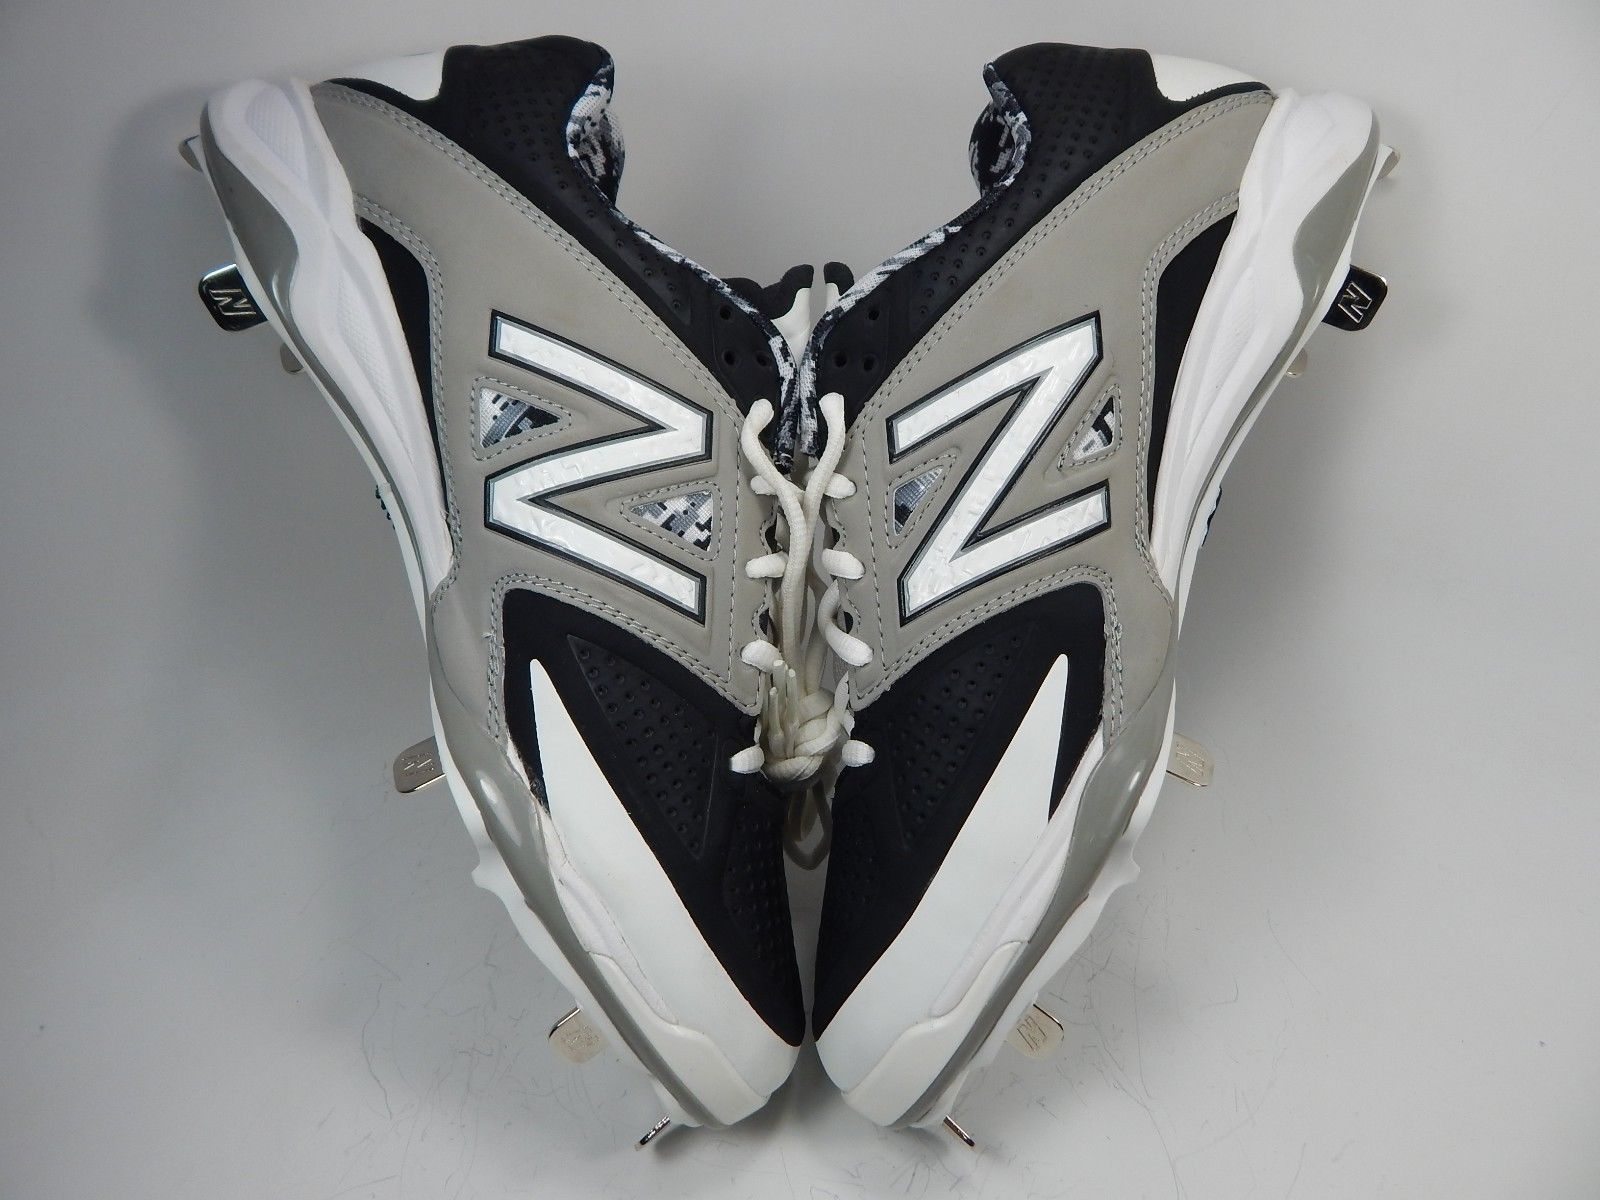 New Balance 4040v2 Metal Baseball Cleats Men's Size 16 2E WIDE EU 51 L4040GK2